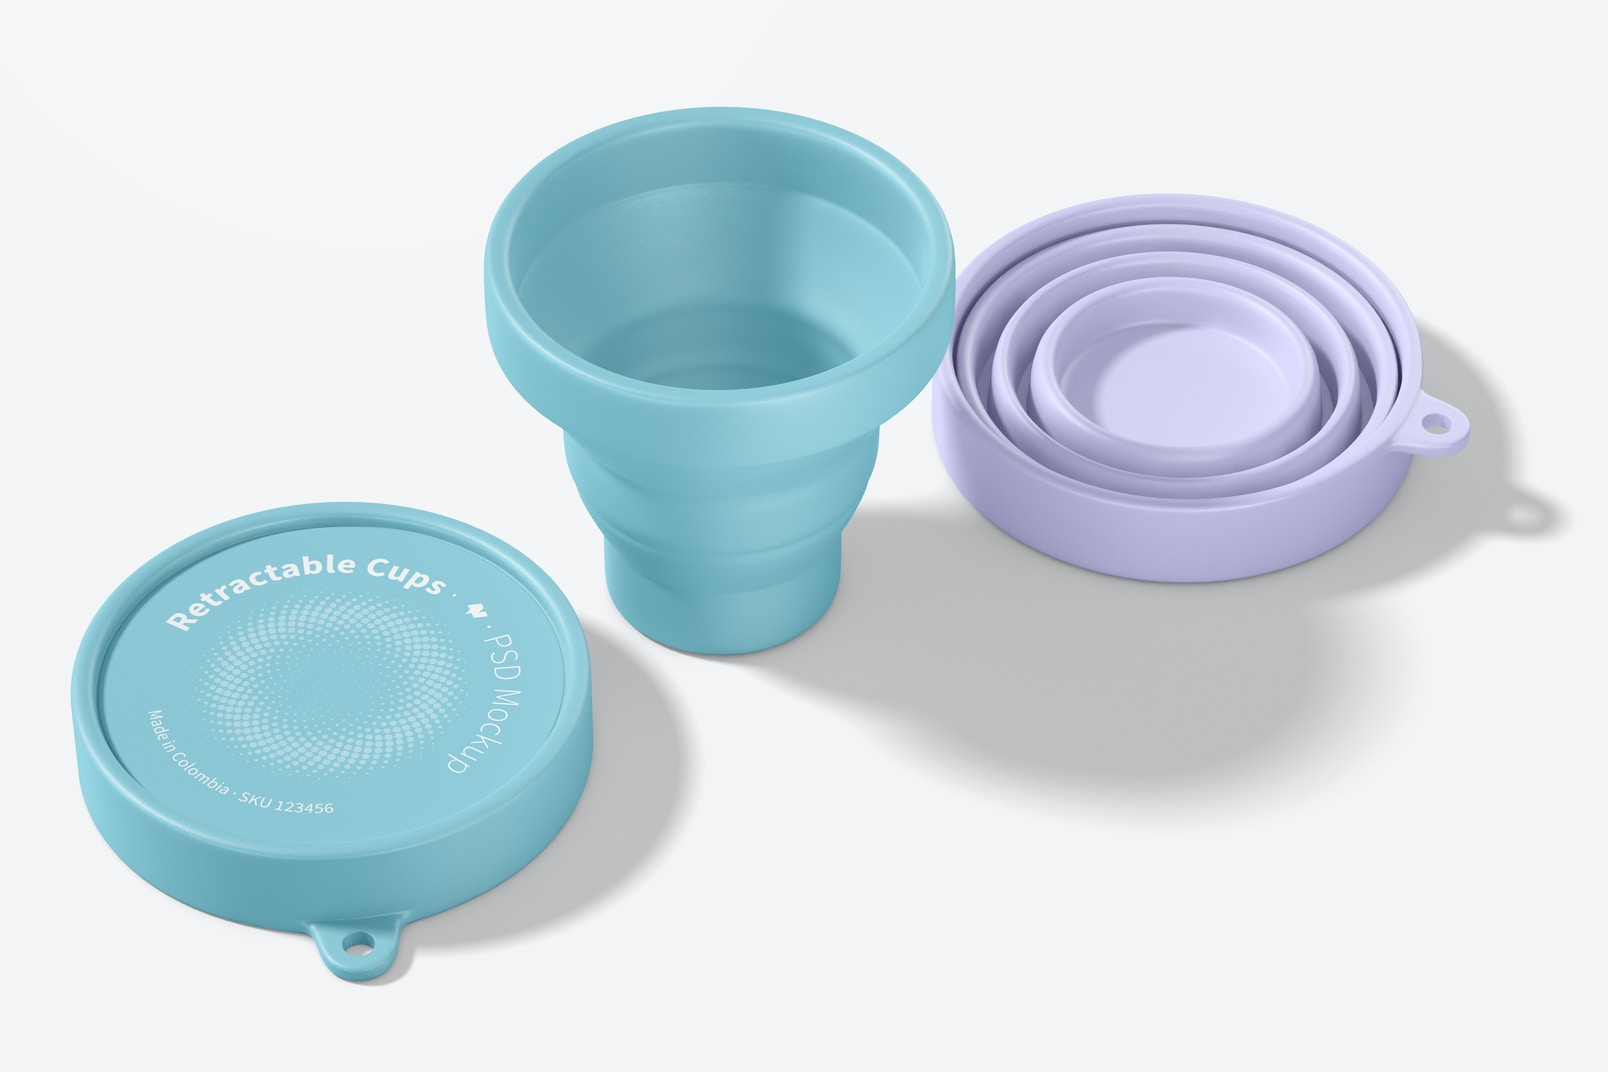 Retractable Cups Mockup, Perspective View